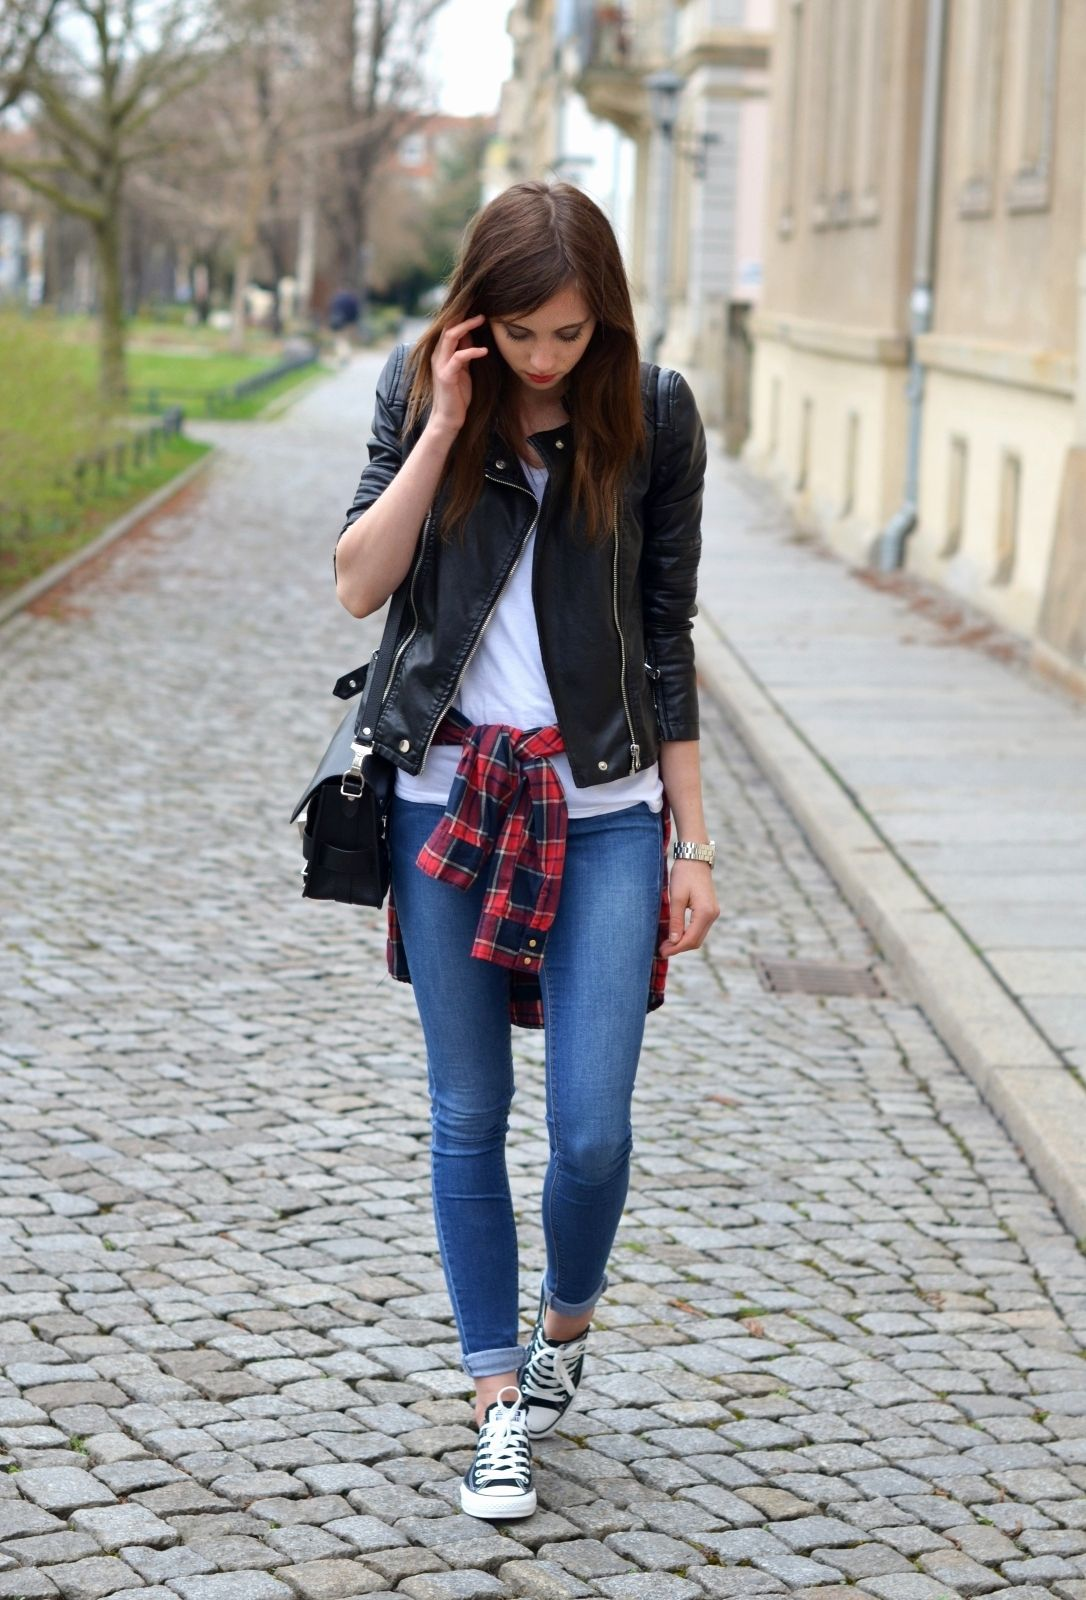 Women S Black Leather Jacket White And Red And Navy Plaid